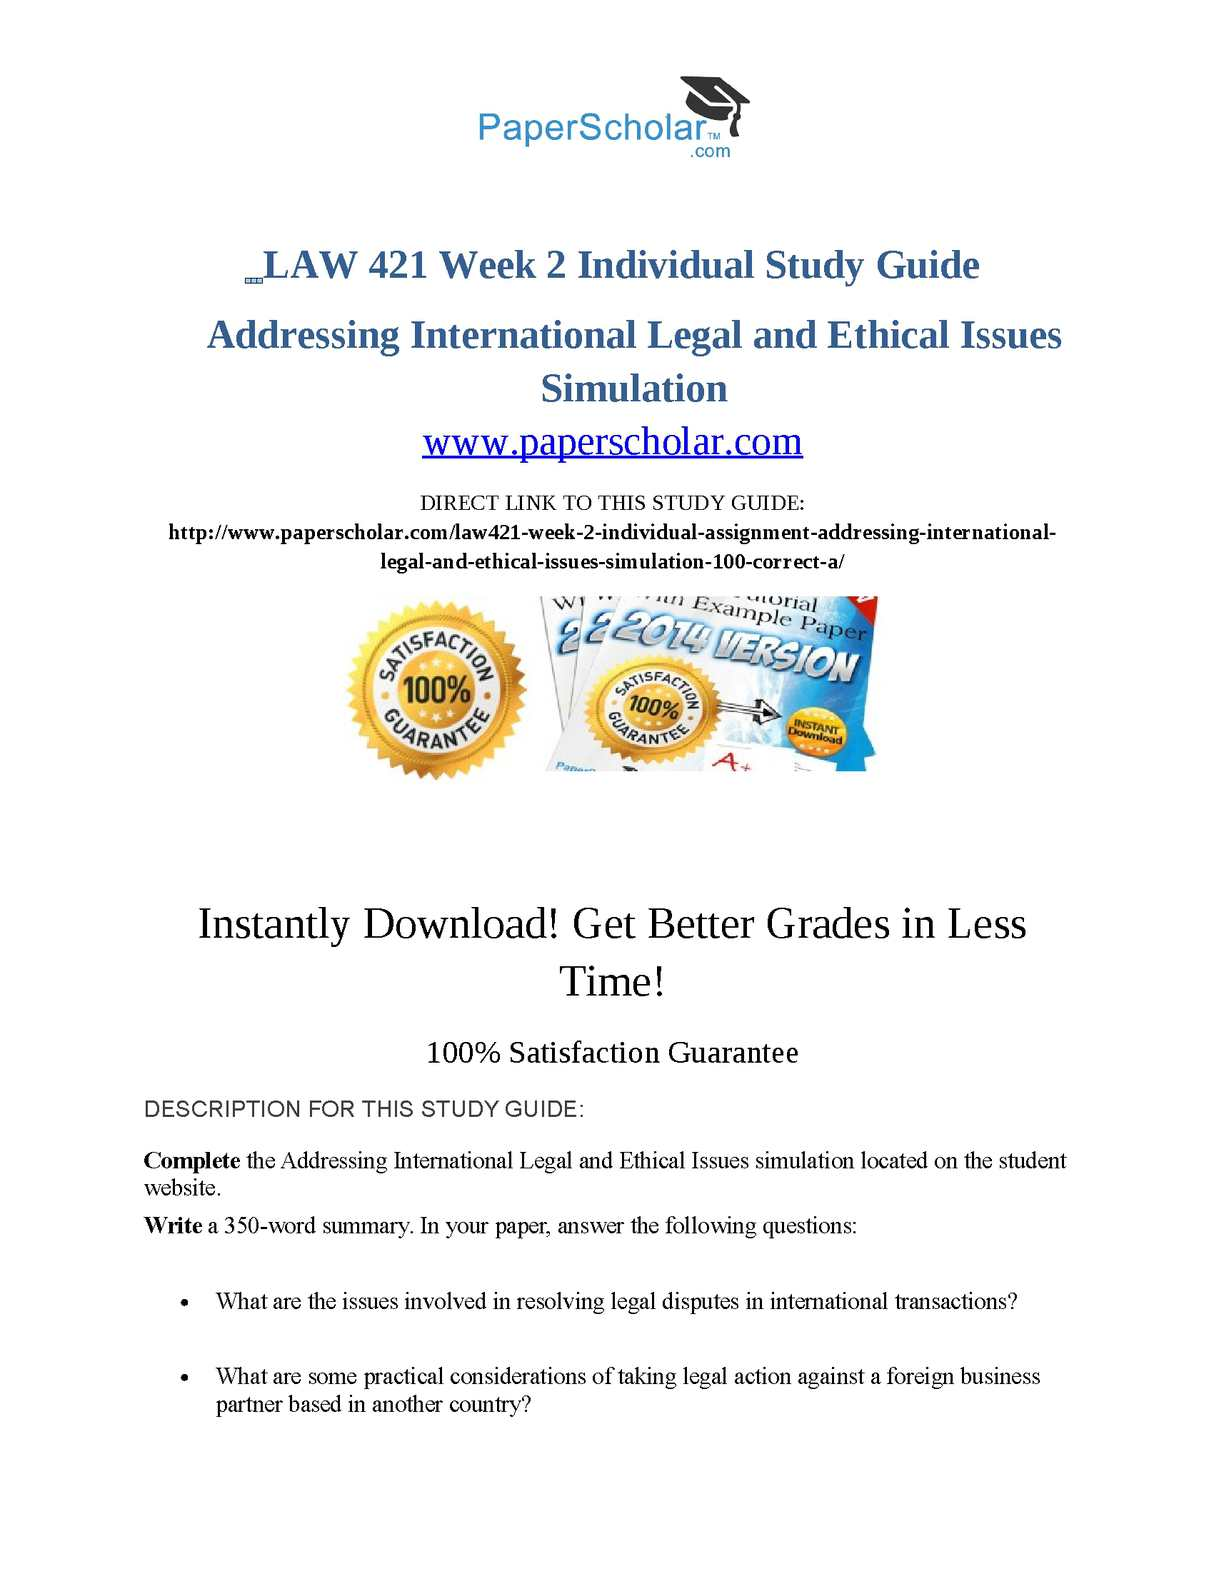 LAW 421 – Addressing International Legal and Ethical Issues Simulation Summary